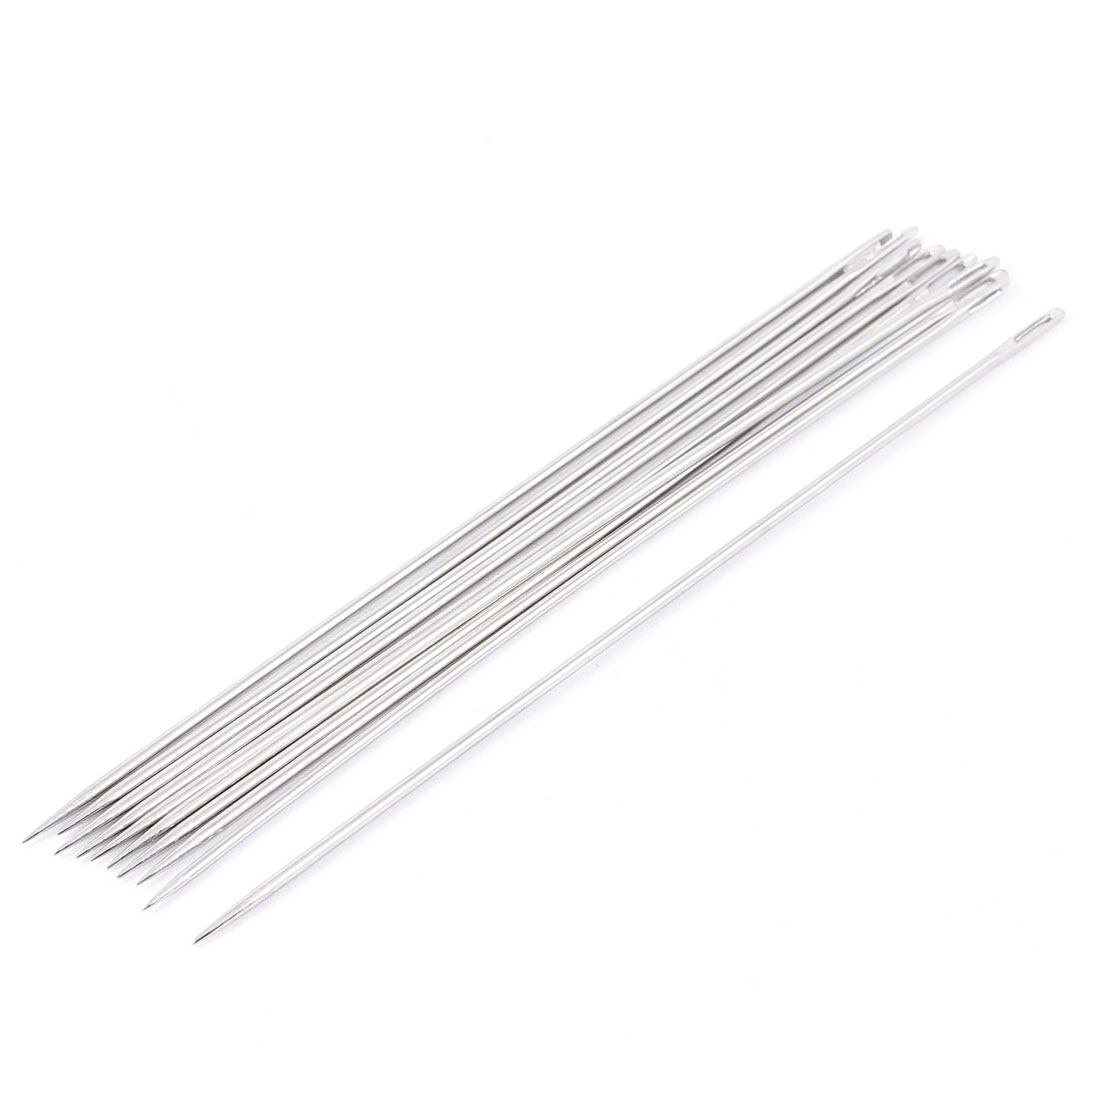 "6"" Length Silver Tone Metal Sharp Tip Threading Sewing Needles 10 Pcs"